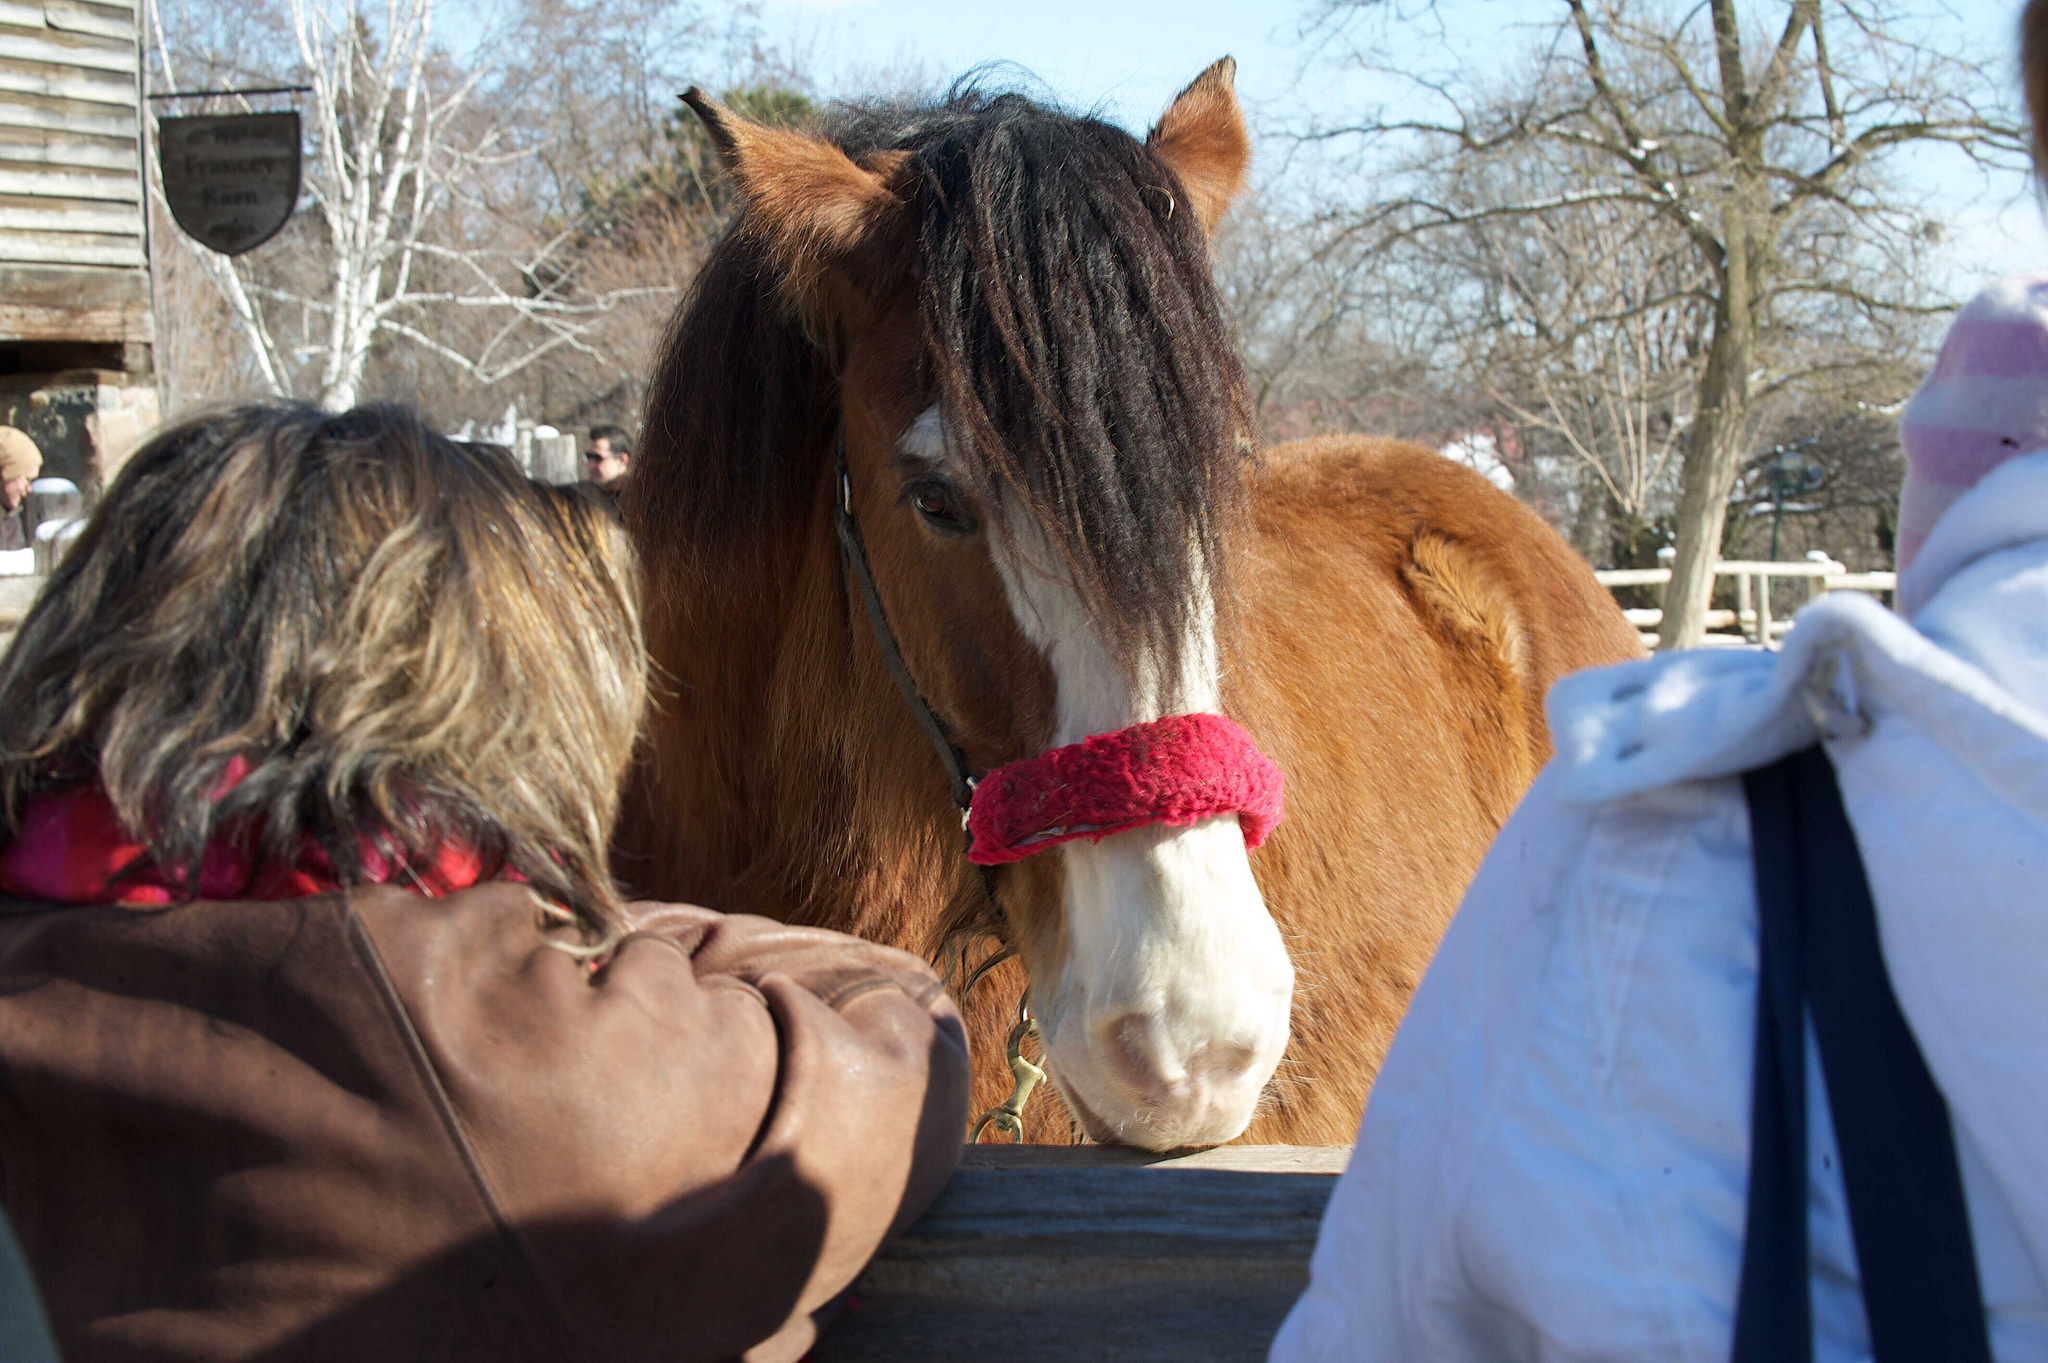 Image of horse and people at Riverdale Farm.